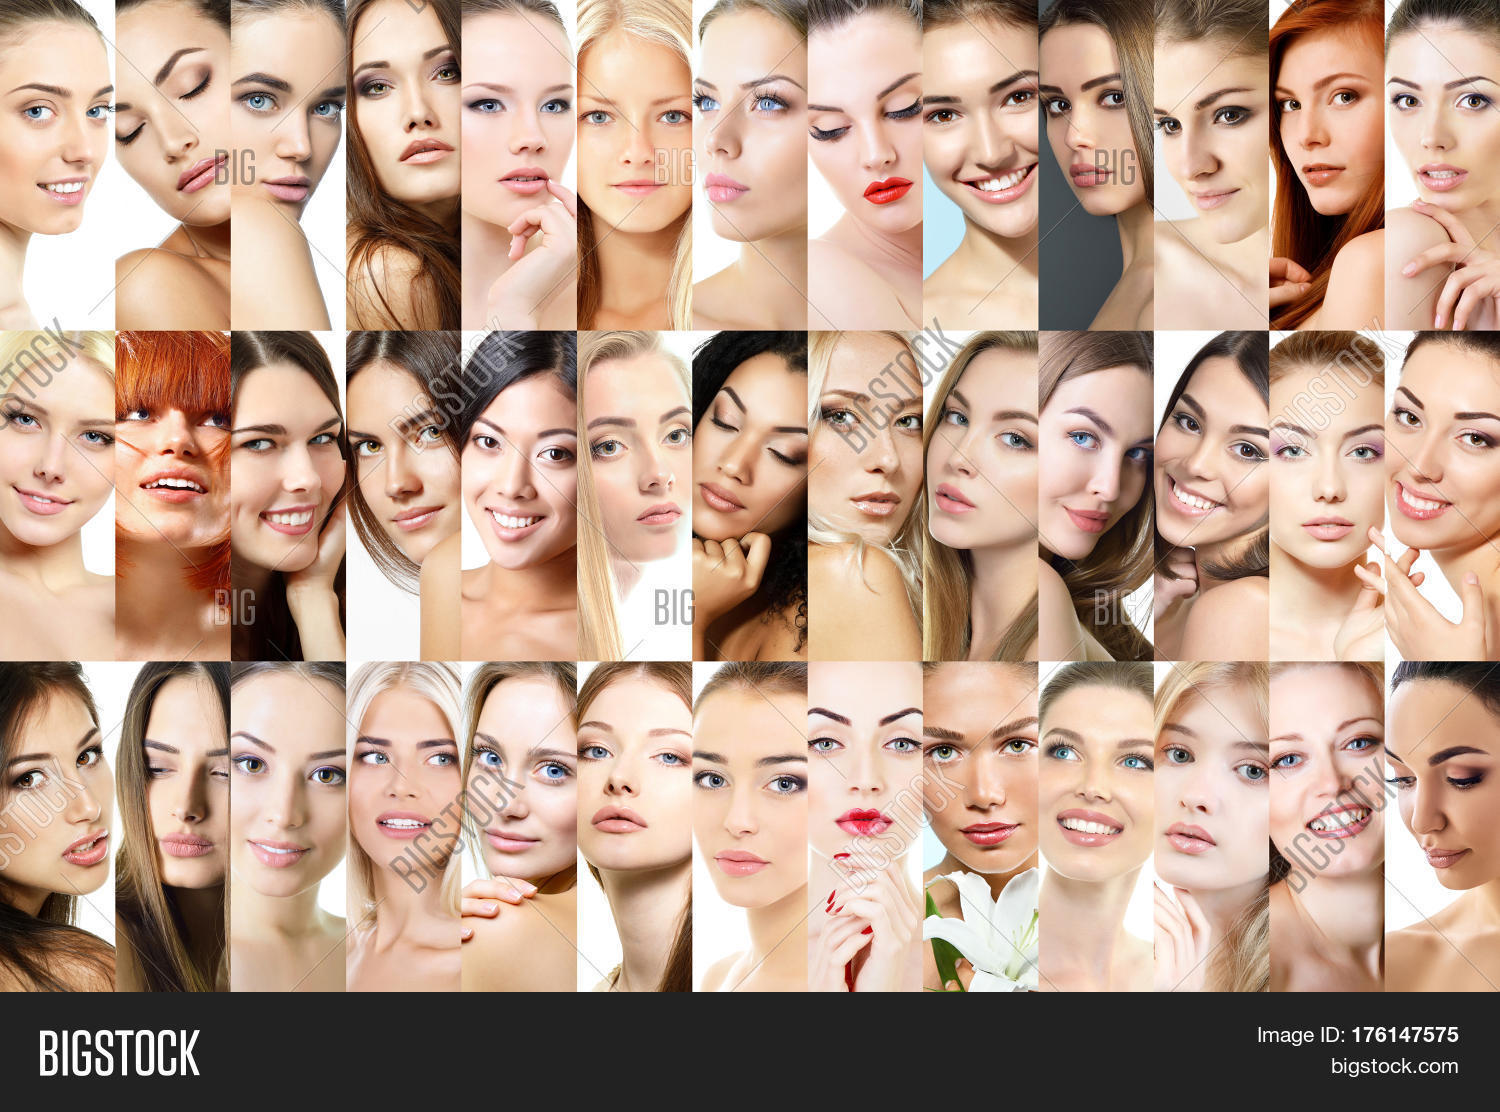 Images Latino faces photo